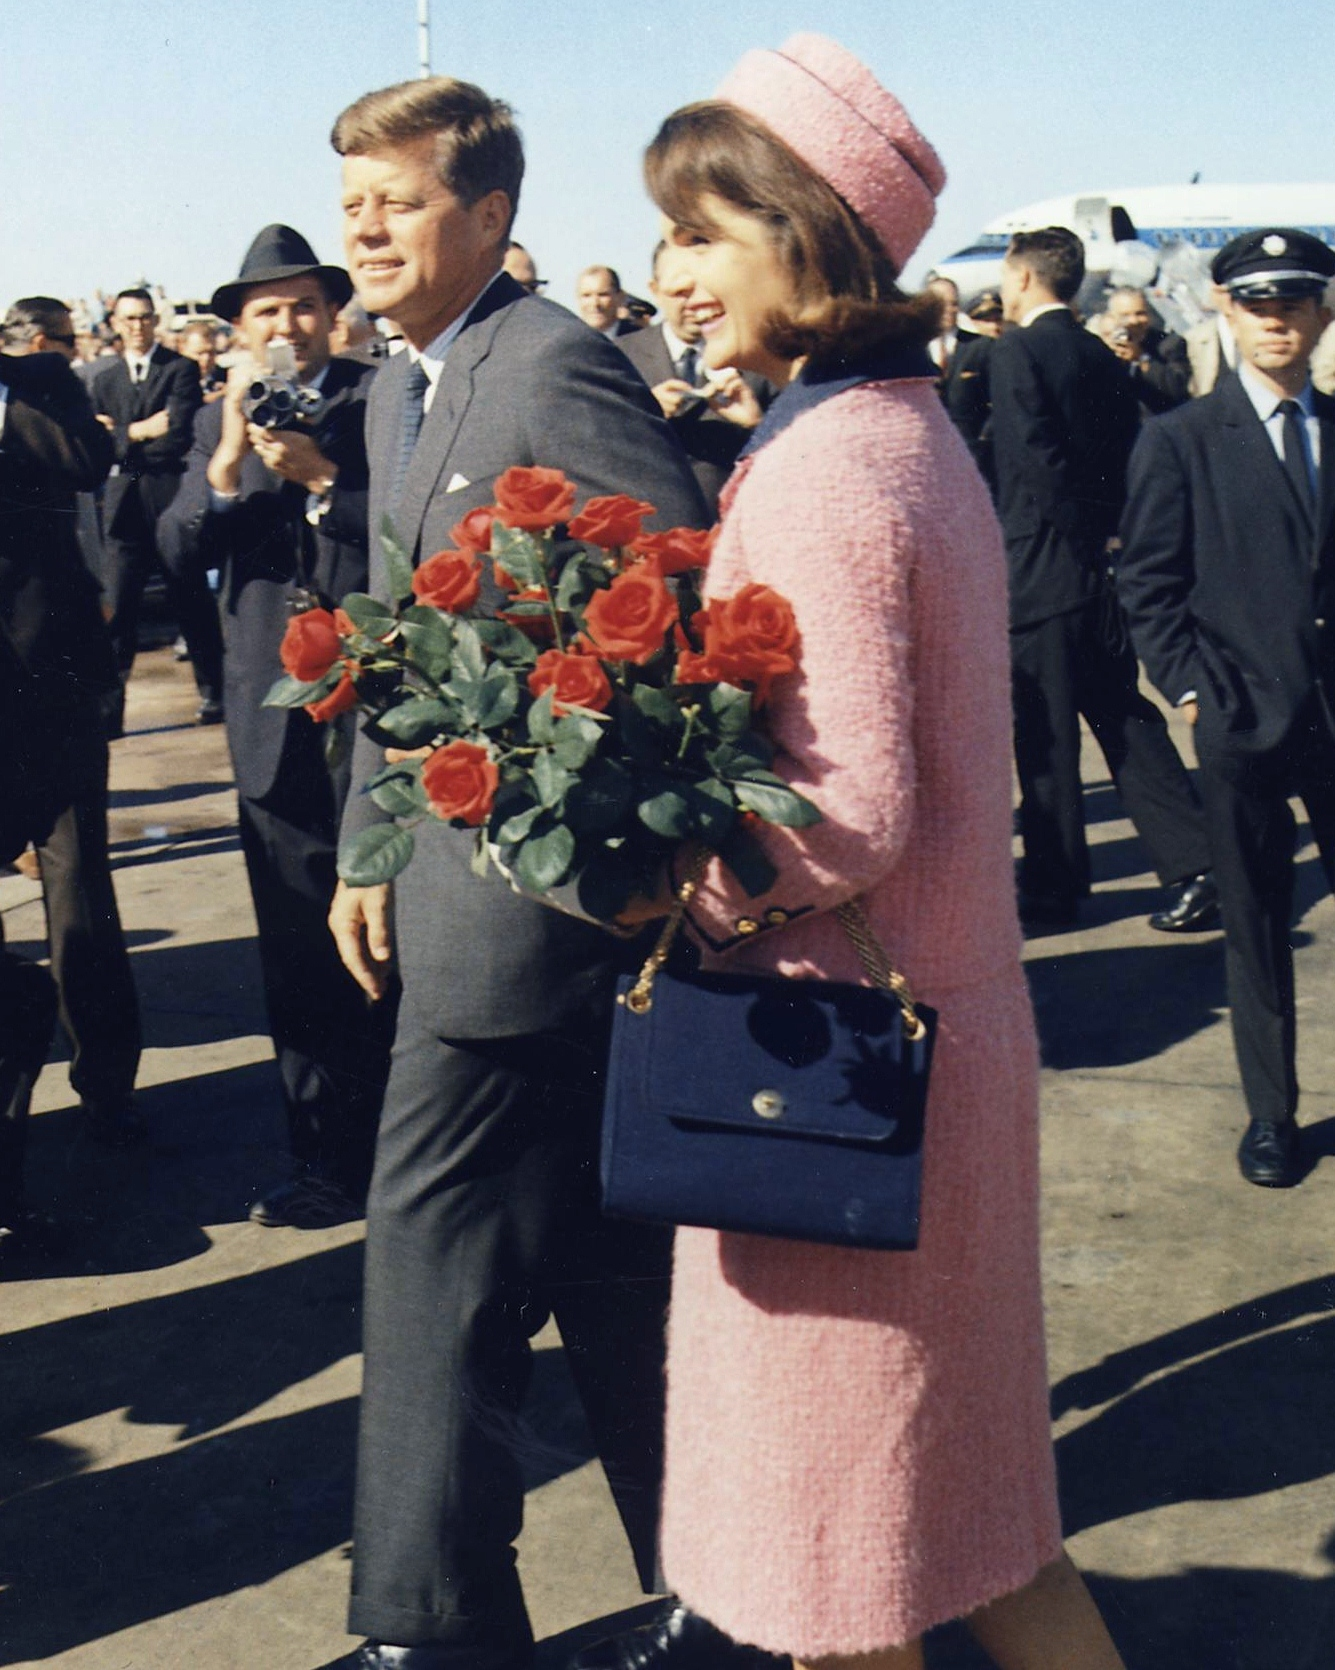 The Kennedys on the day of assassination. Source: Google